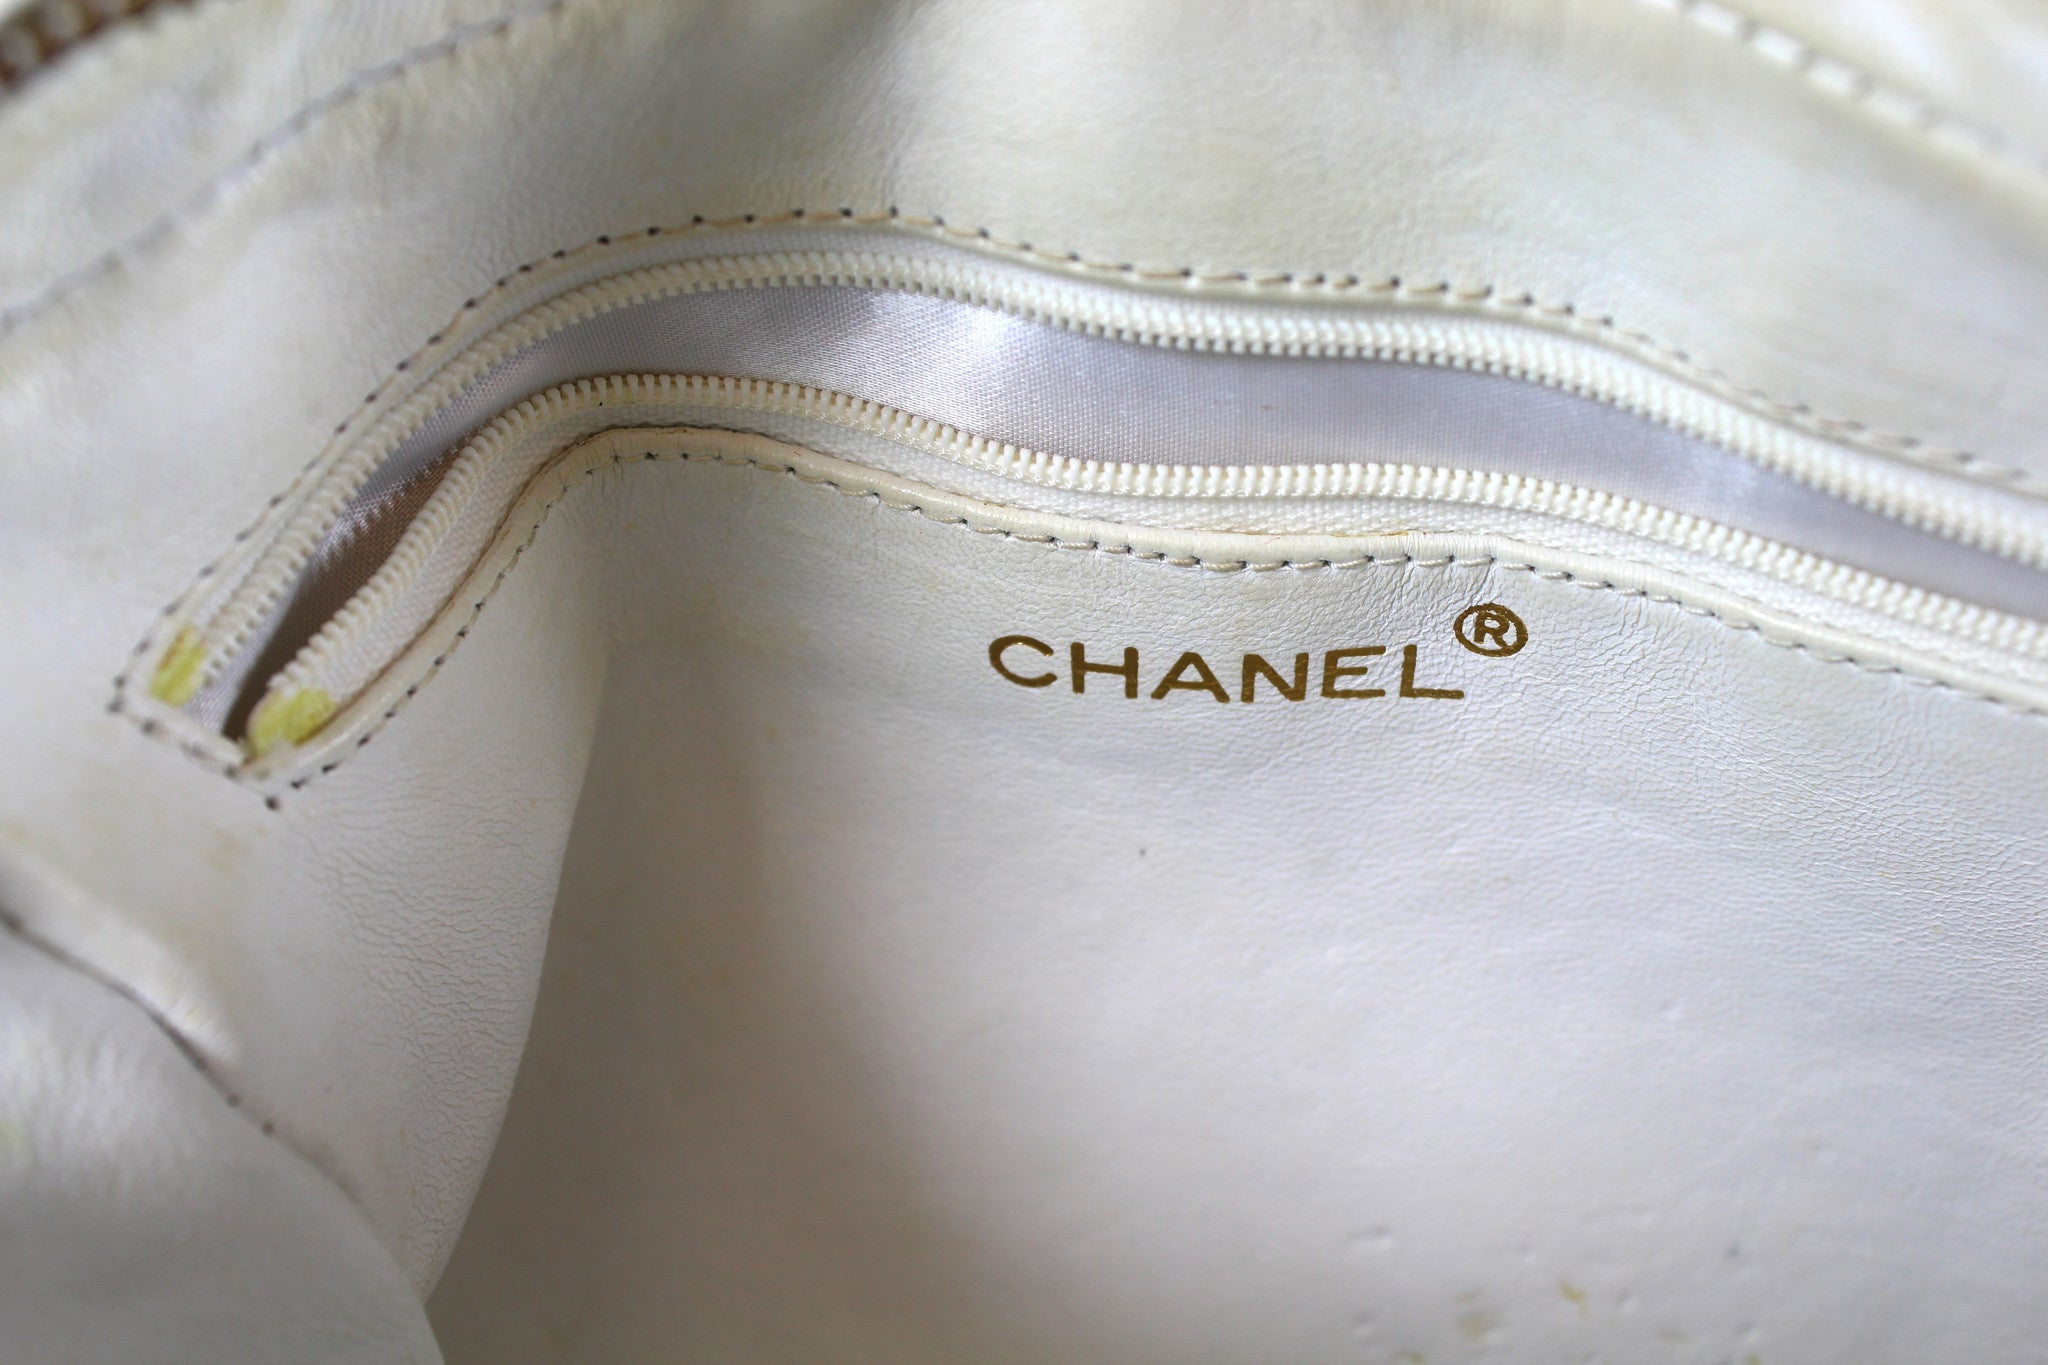 Chanel Vintage White Lizard Leather Tassel Bag - Encore Consignment - 6